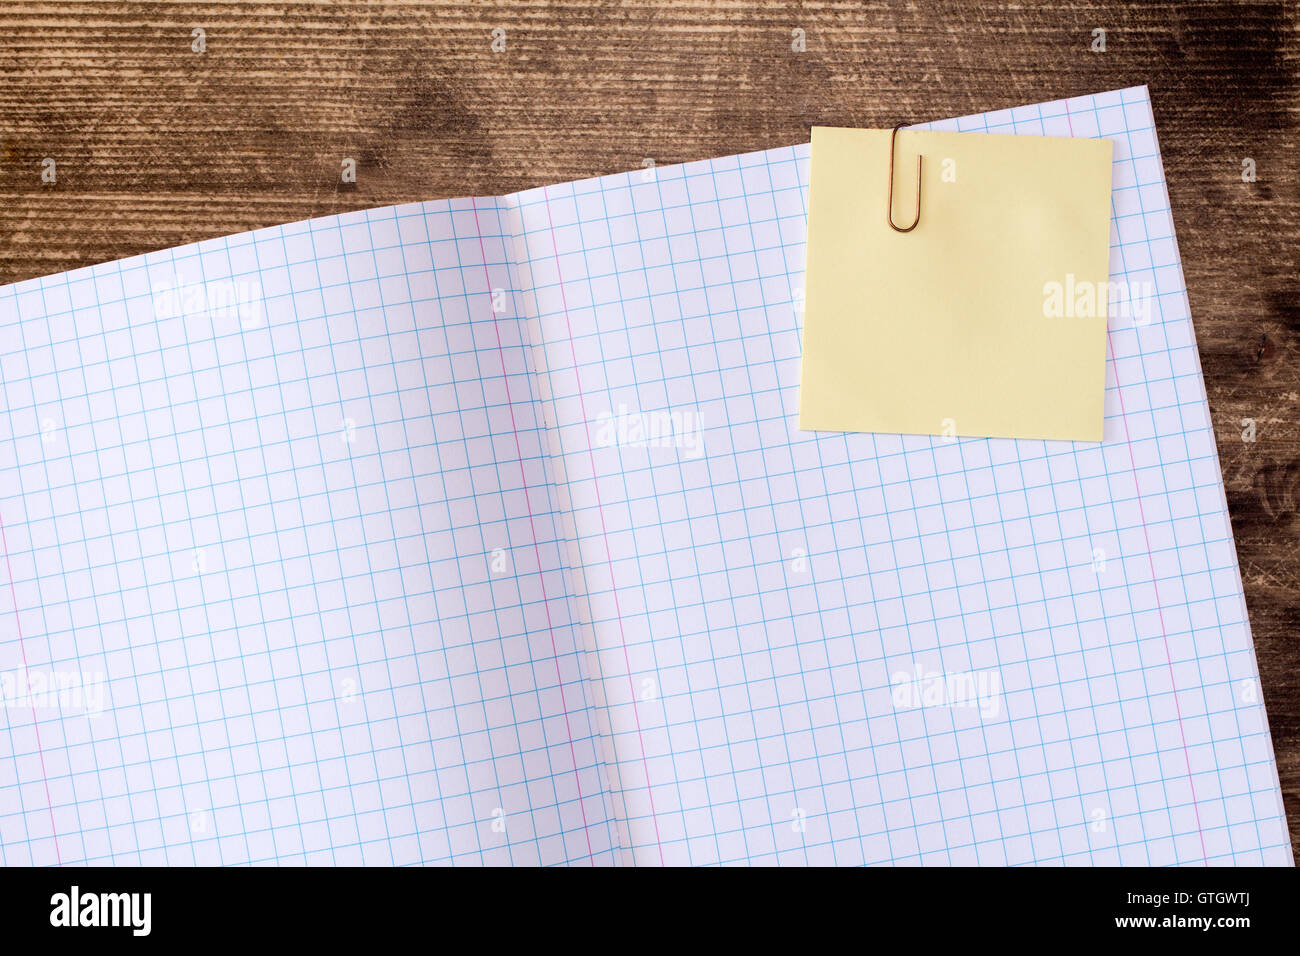 Squared exercise book with blank yellow sticky note - Stock Image